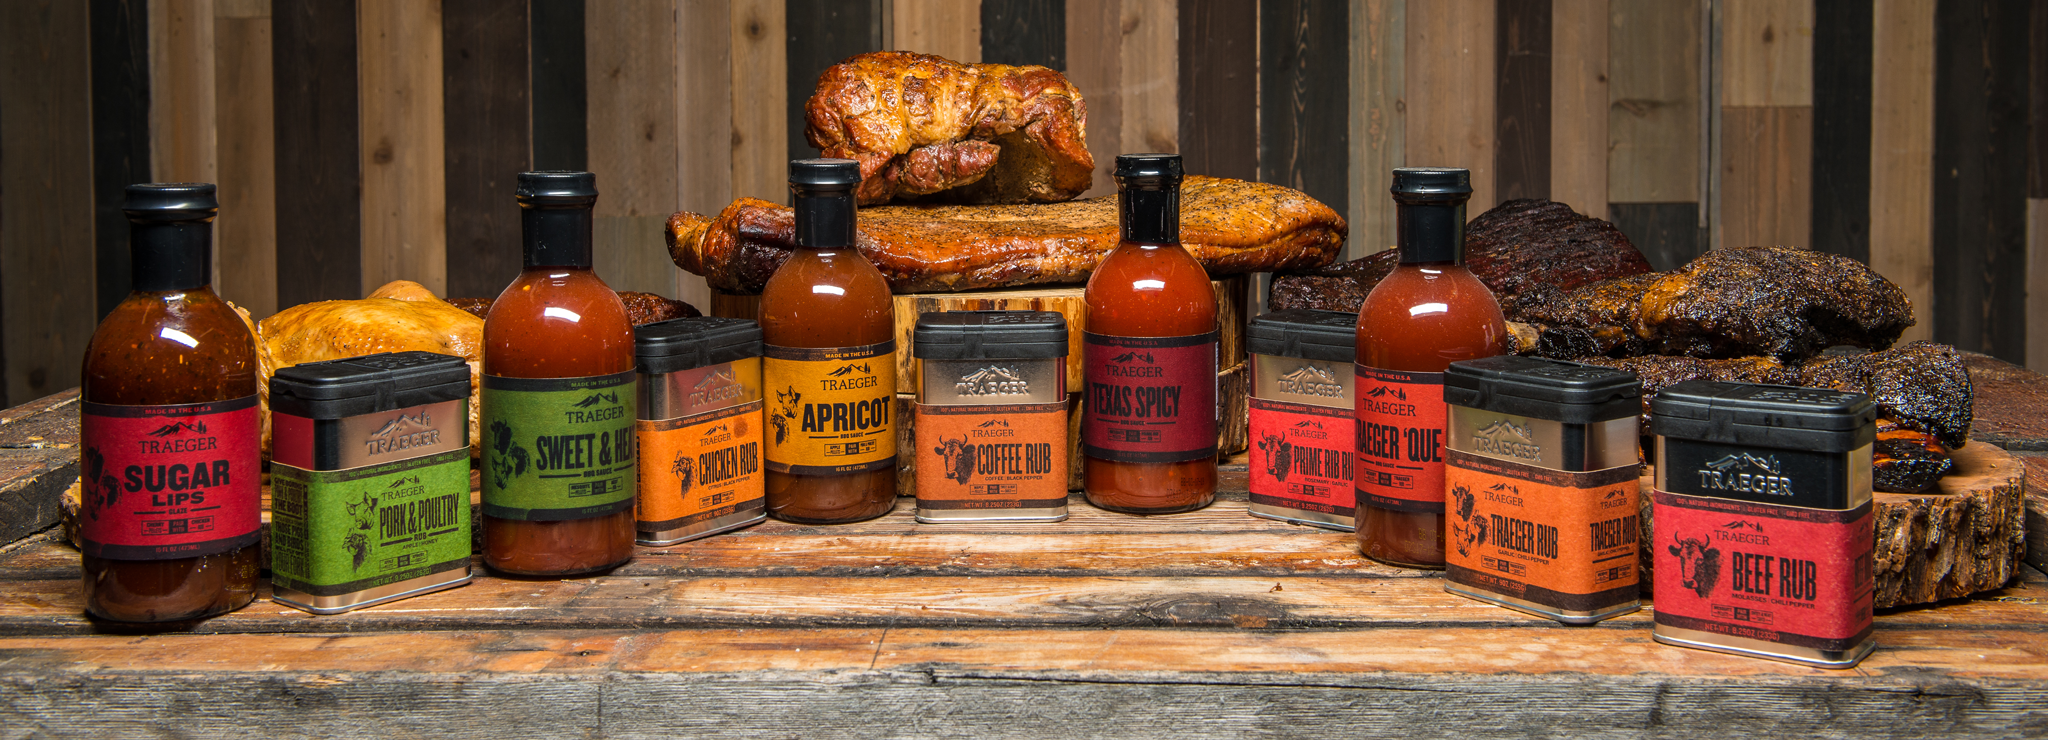 Traeger Rubs and Sauces